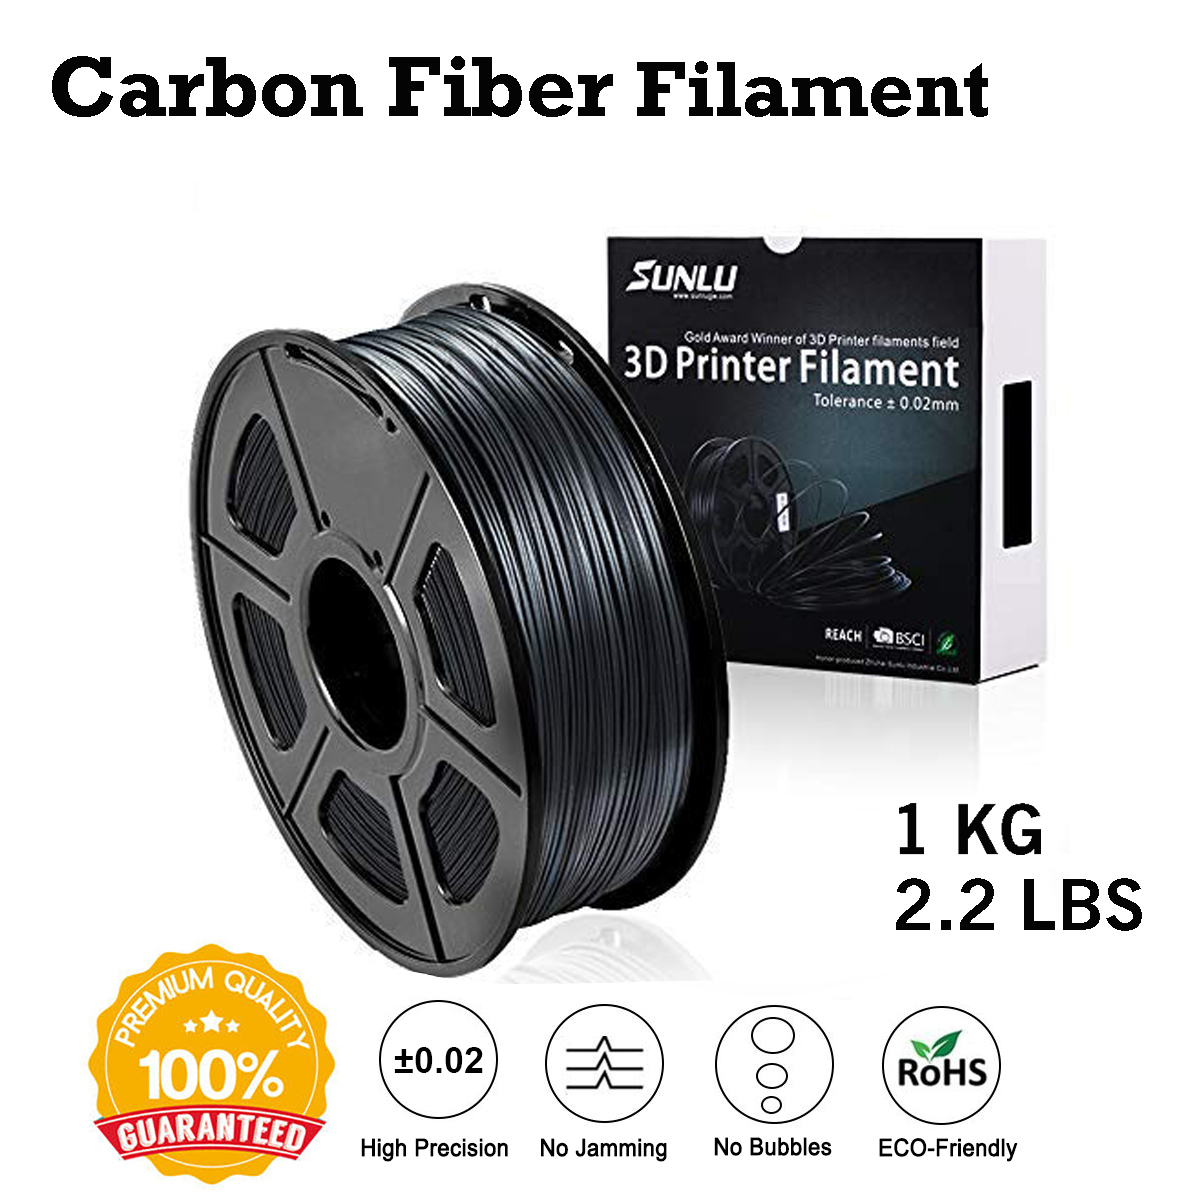 3D Printing Filament 1.75mm 1kg CARBON FIBER based in PLA for 3D Printer,Factory